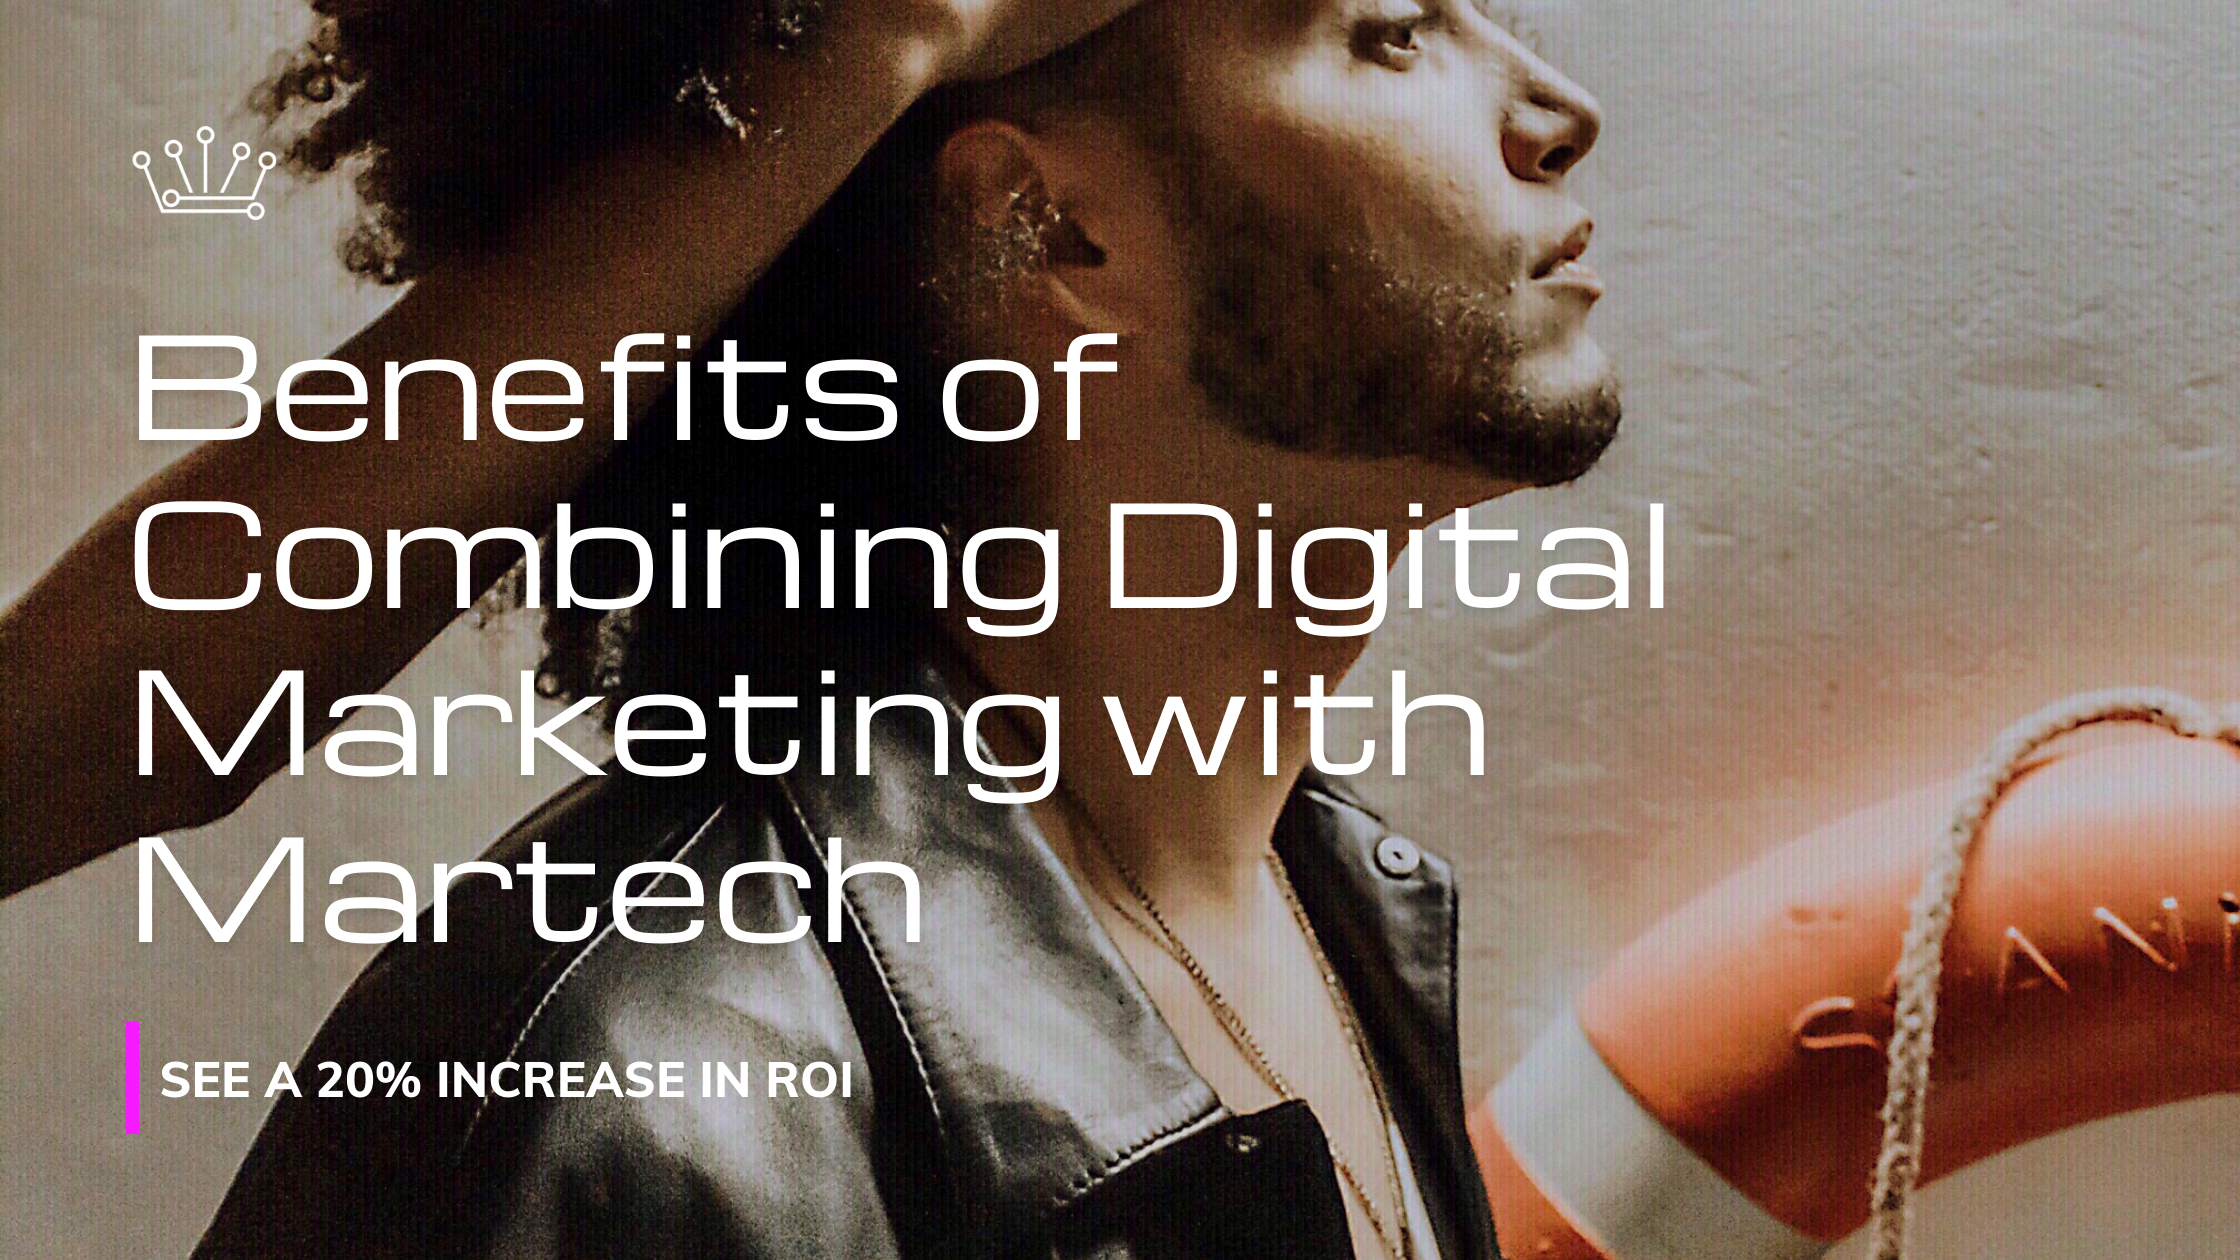 Benefits of Combining Digital Marketing with Martech - Grow ROI by 20%